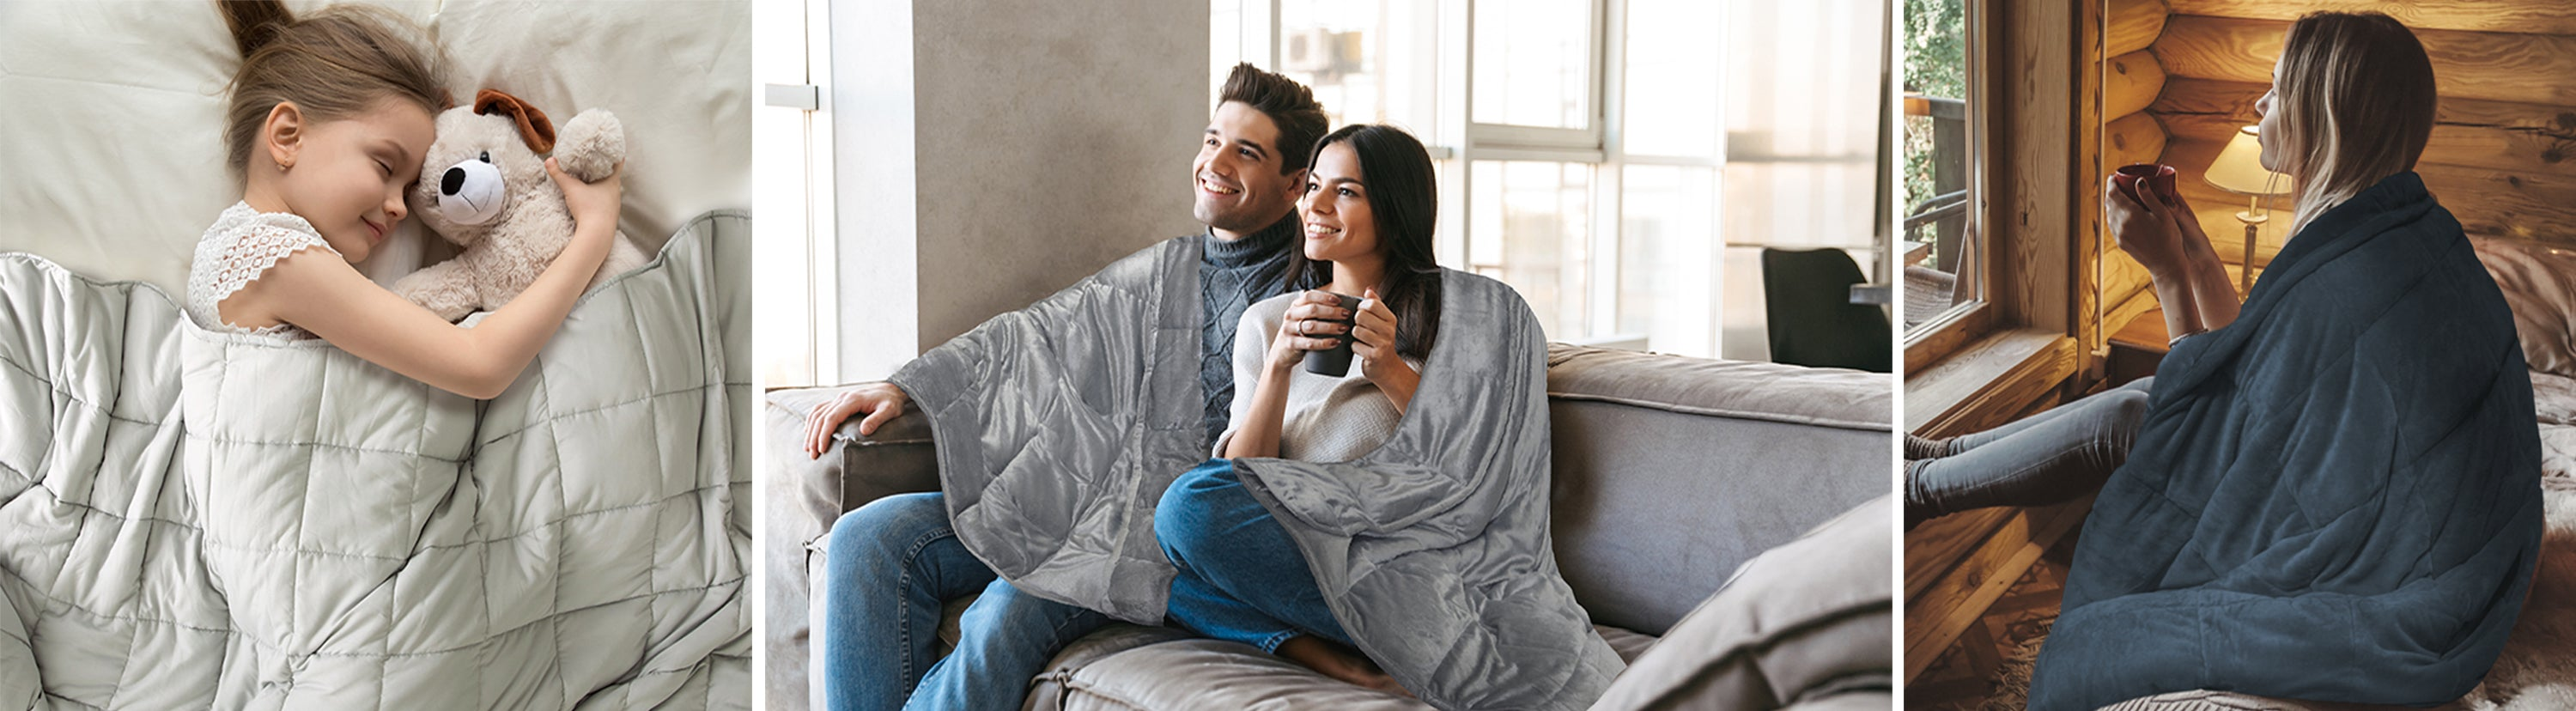 Sutton Home Fashions Throws and Blankets product catalog for desktop